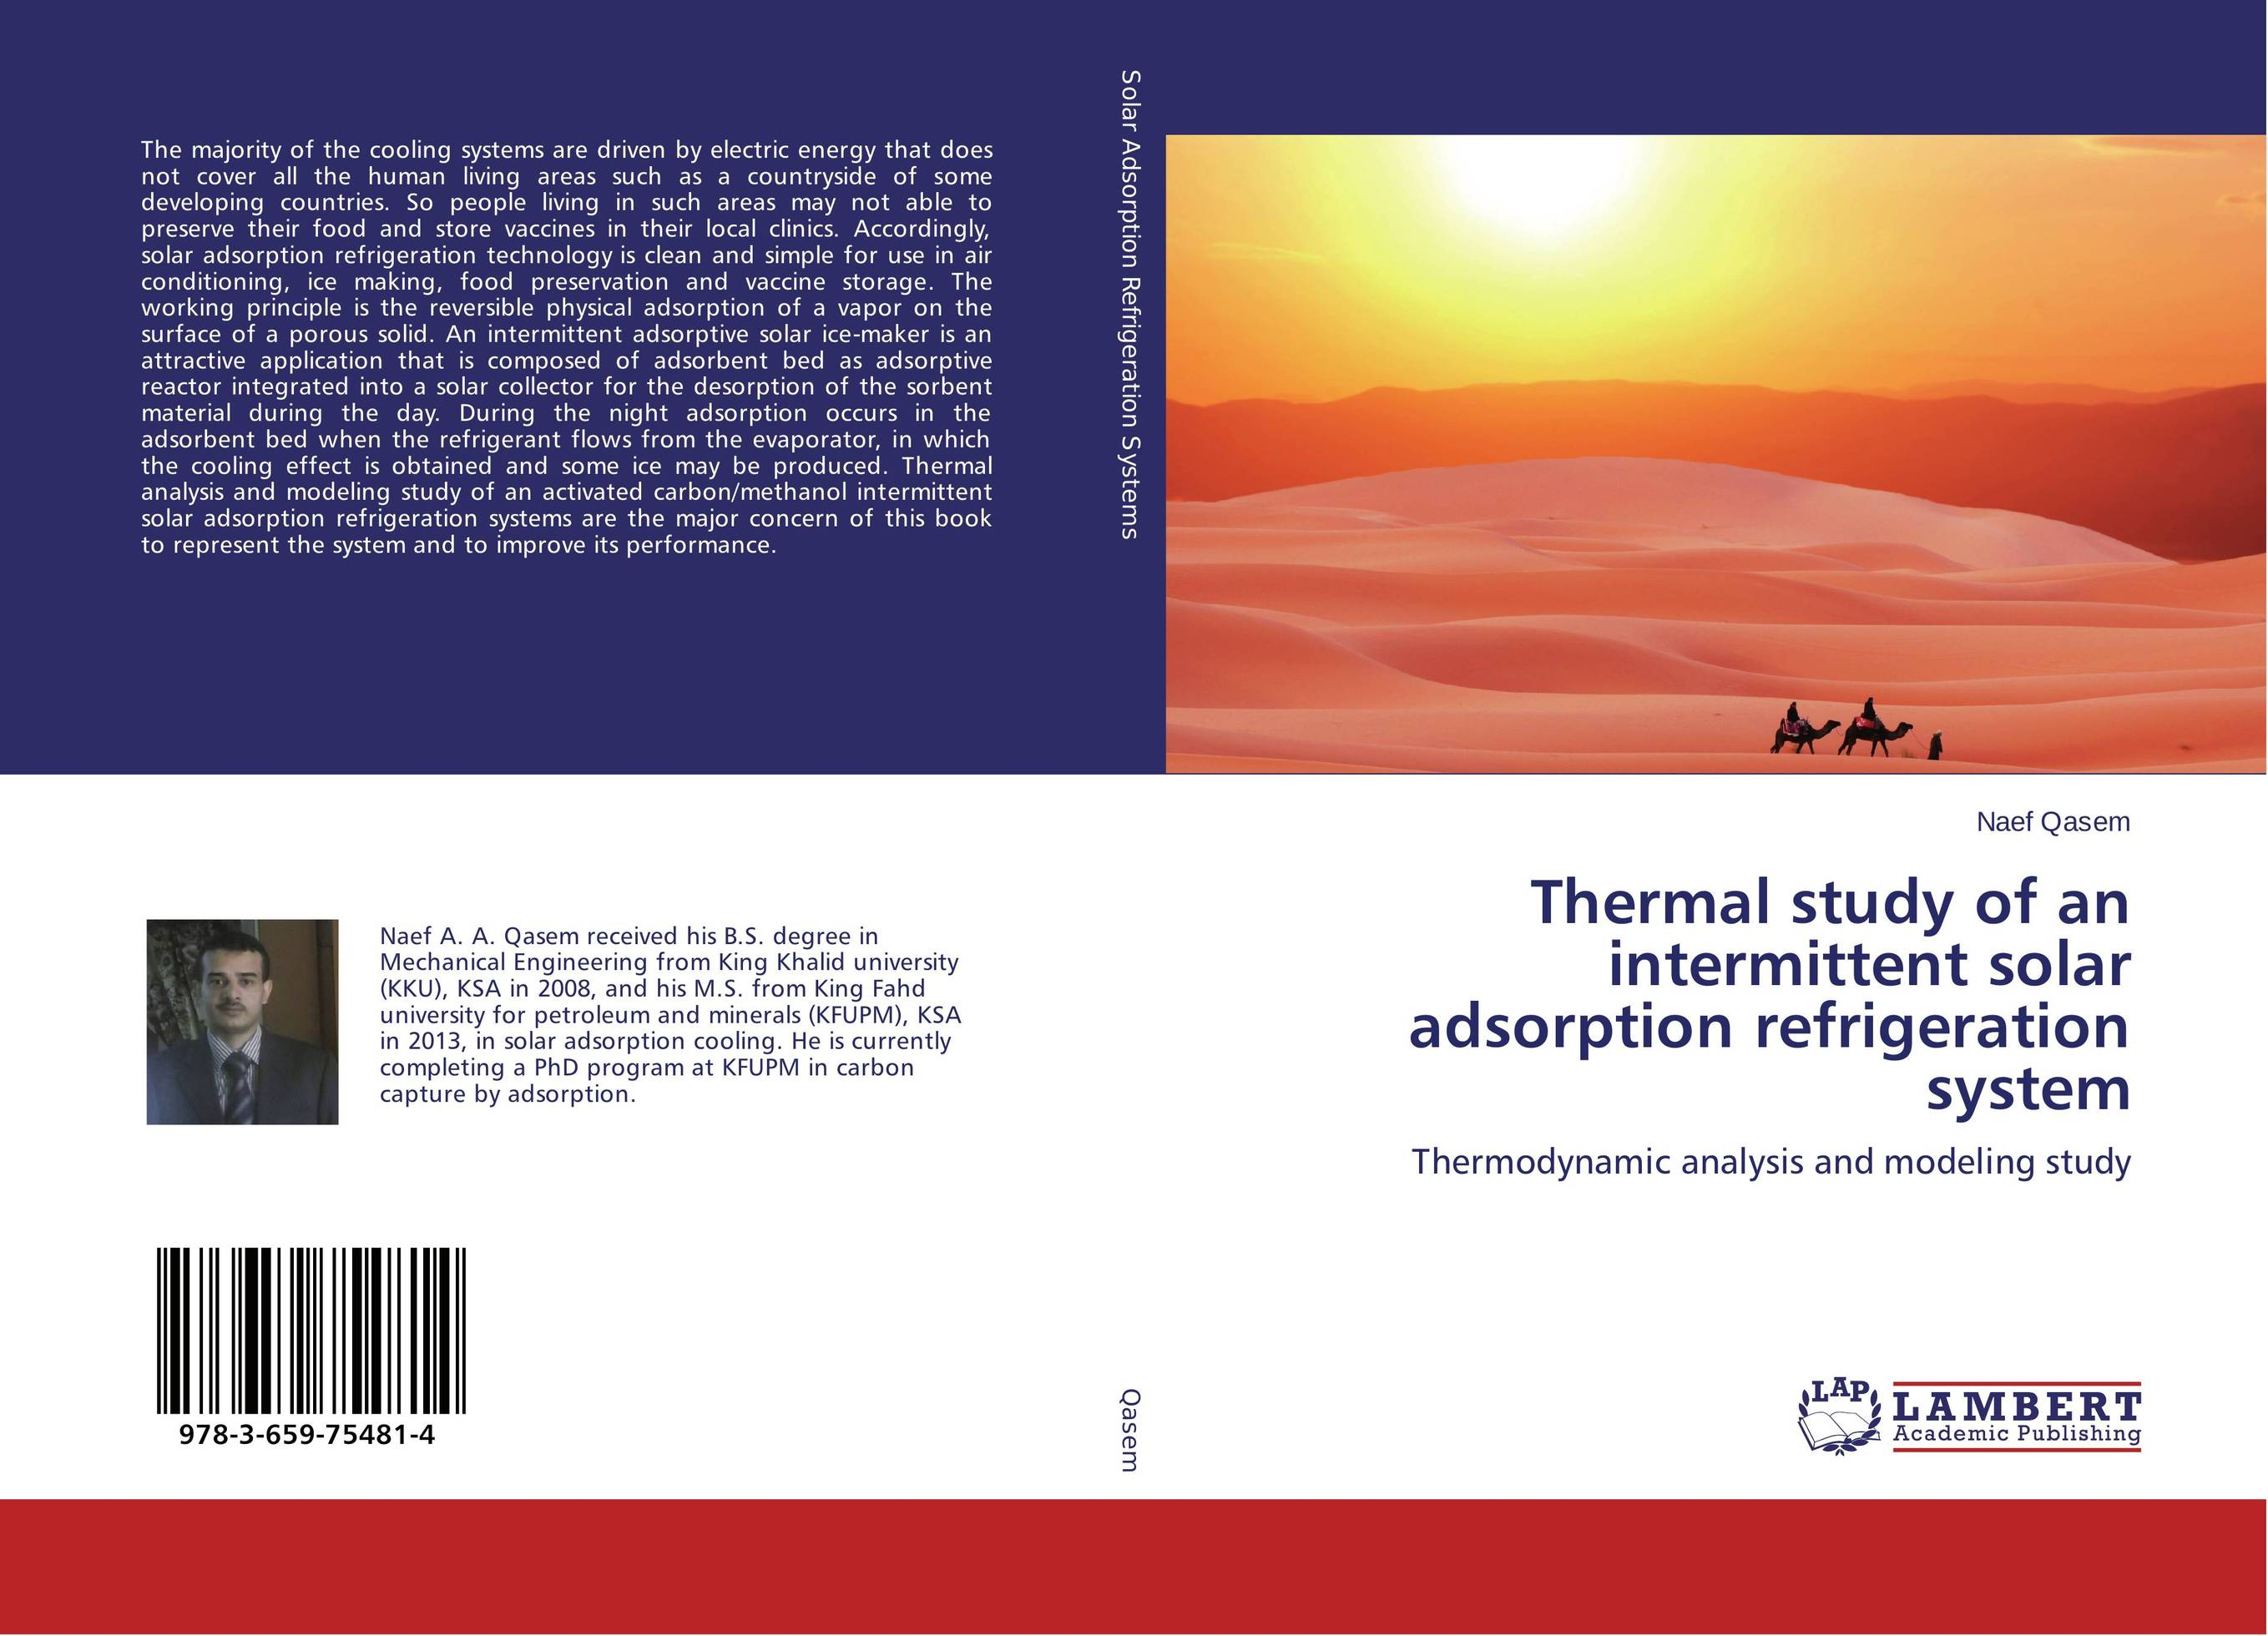 Thermal study of an intermittent solar adsorption refrigeration system